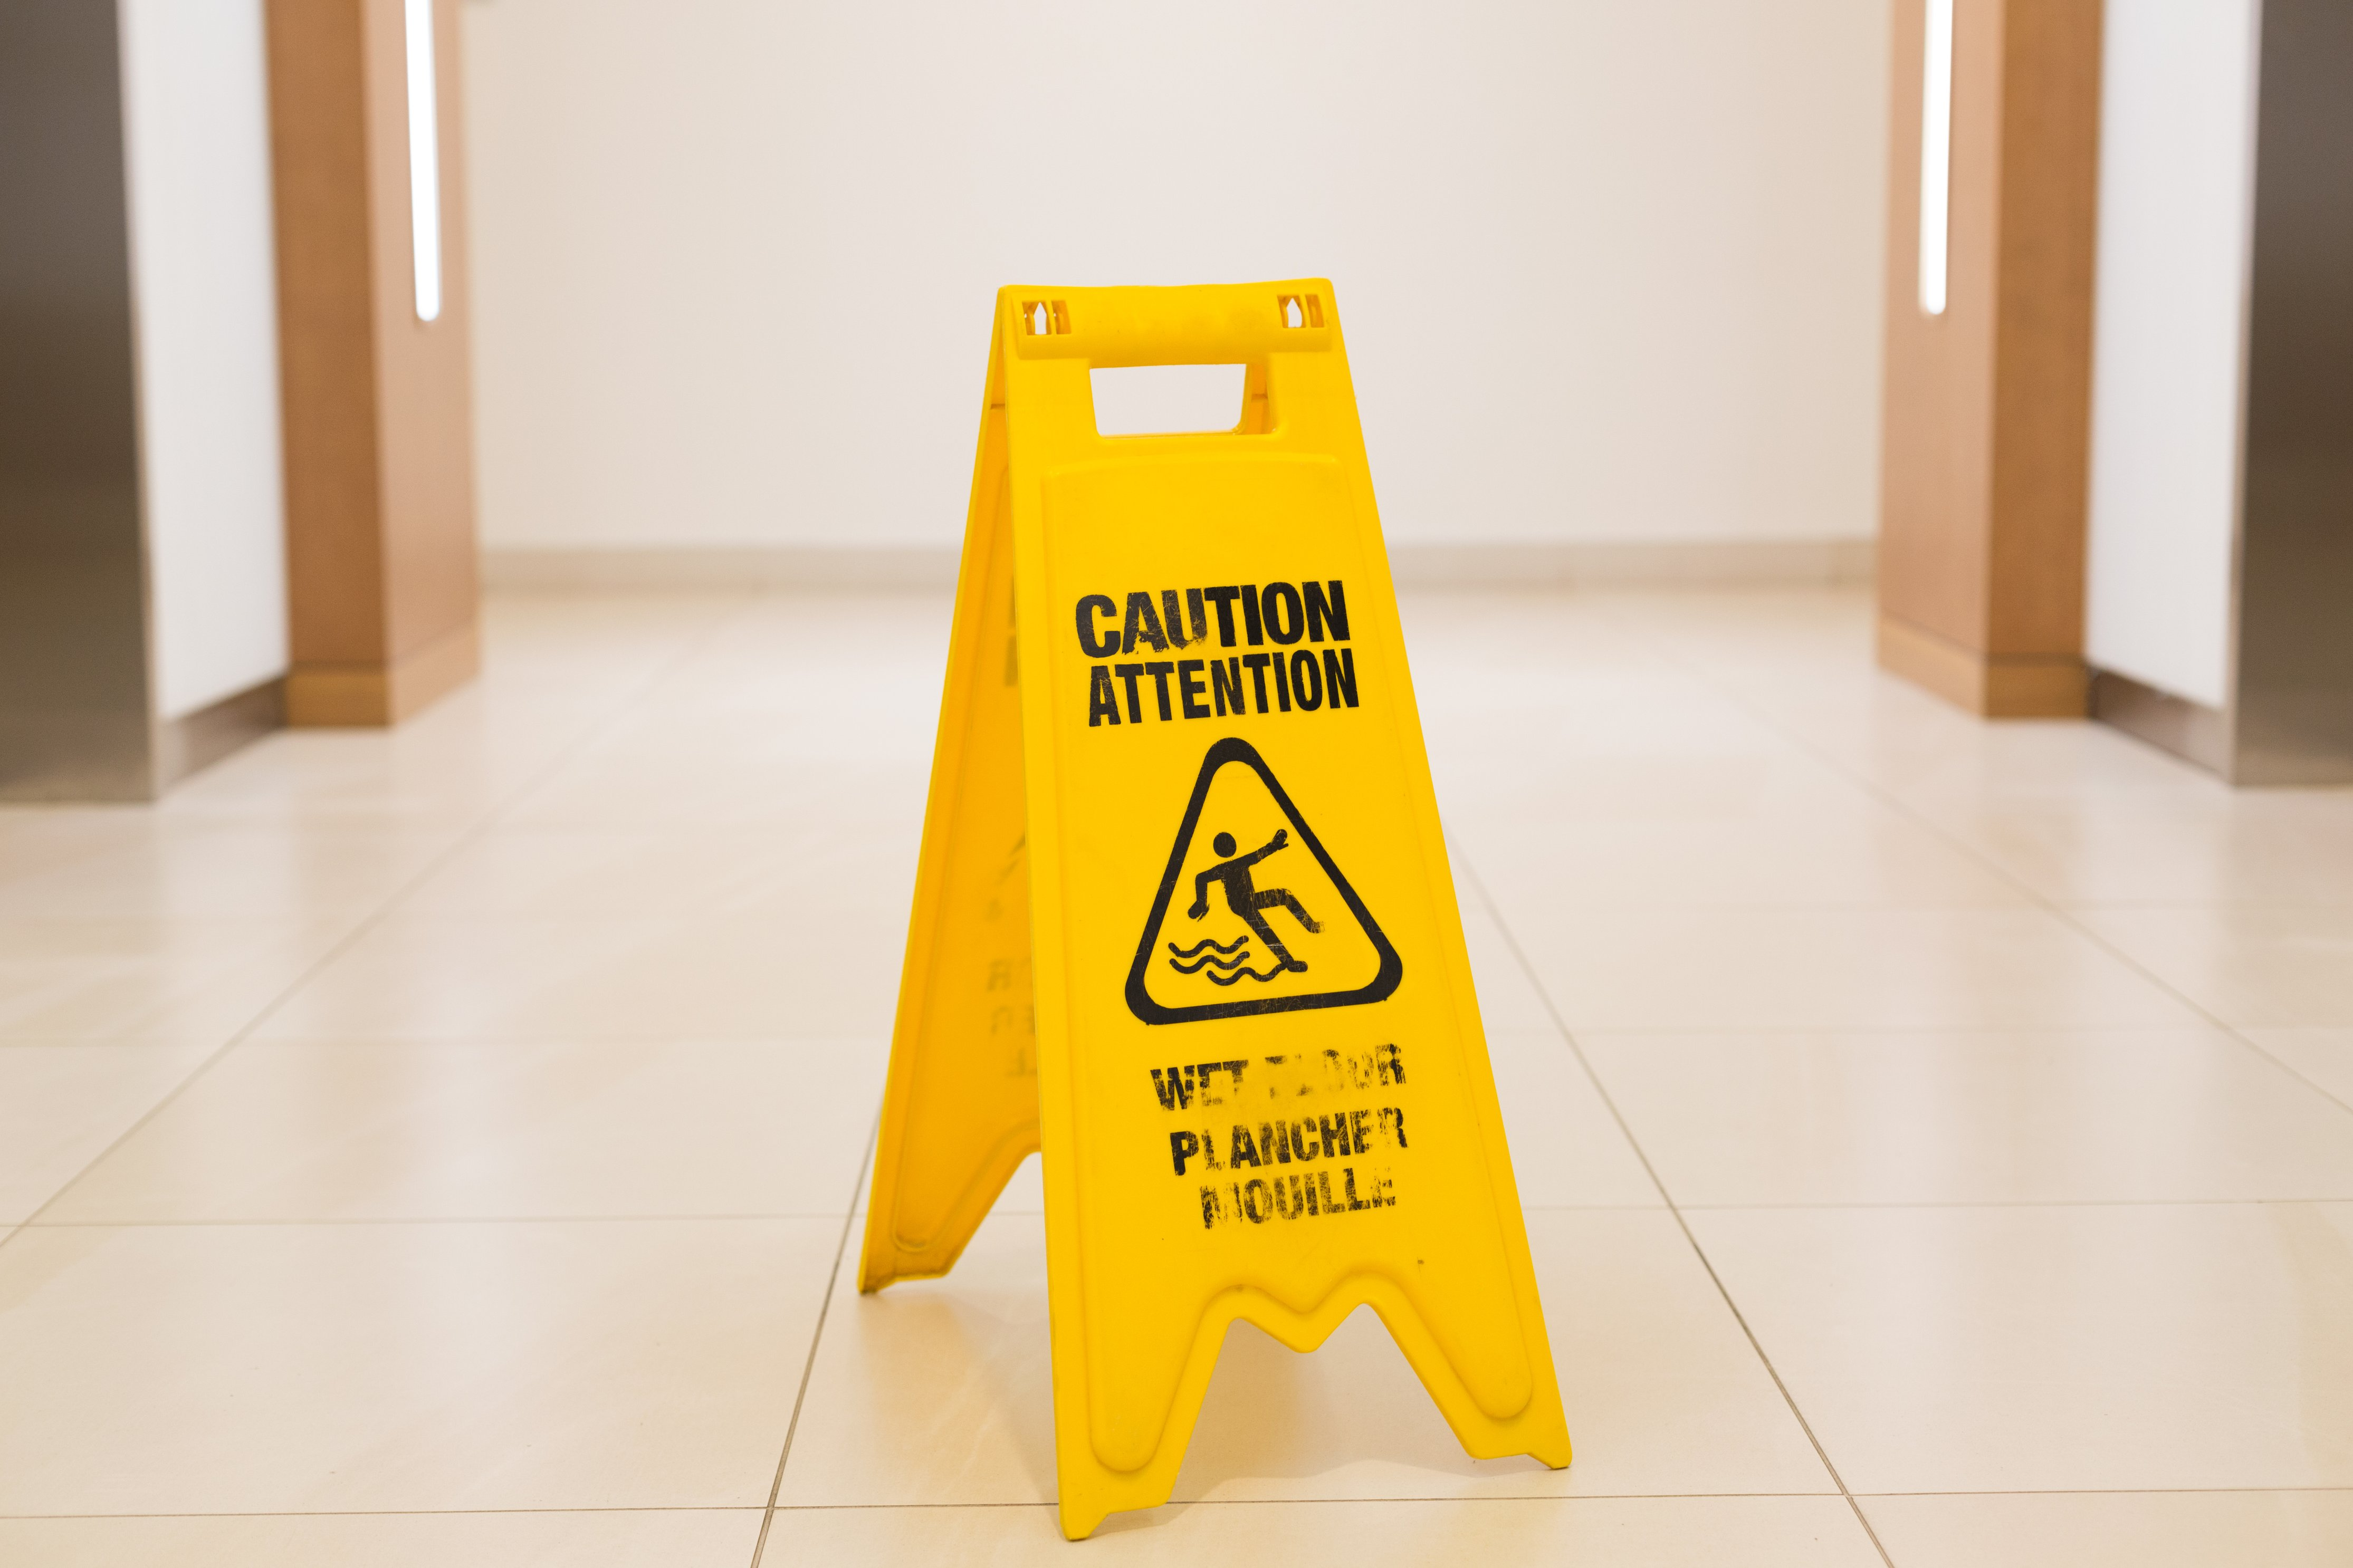 photo of a sign that warns about the wet floor and danger of slipping